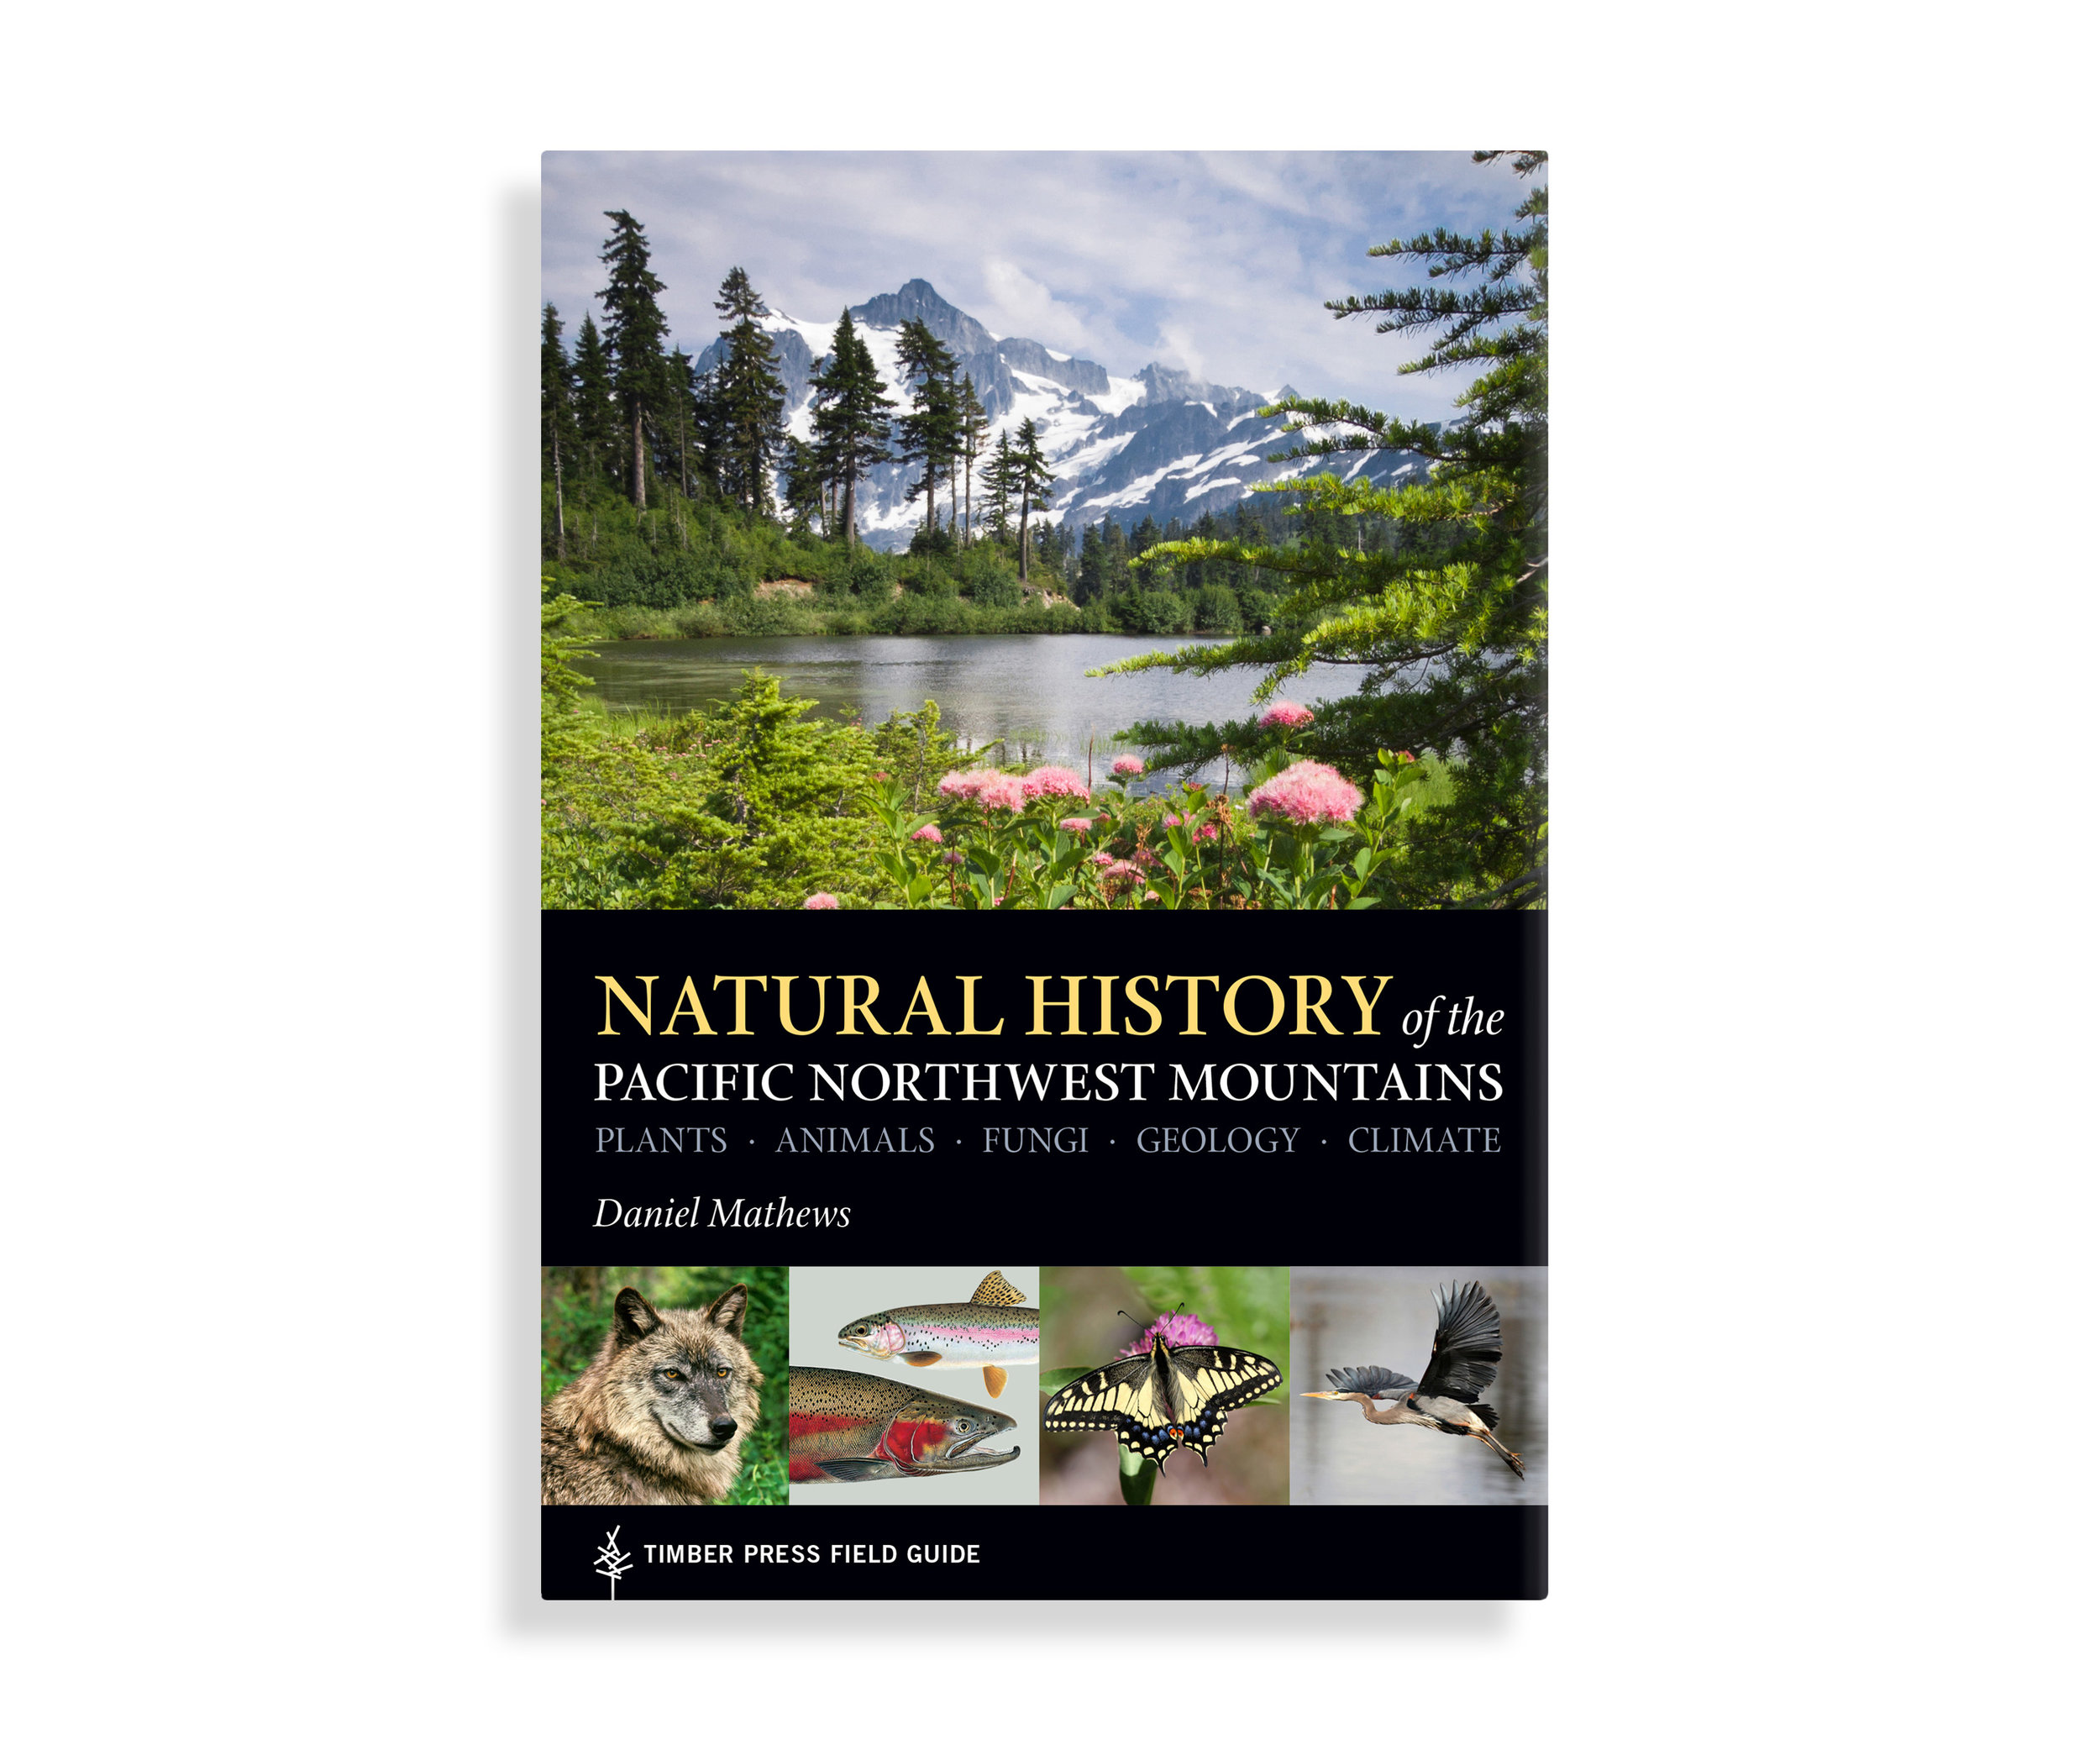 book_fieldguidenaturalhistory_cover_001.jpg